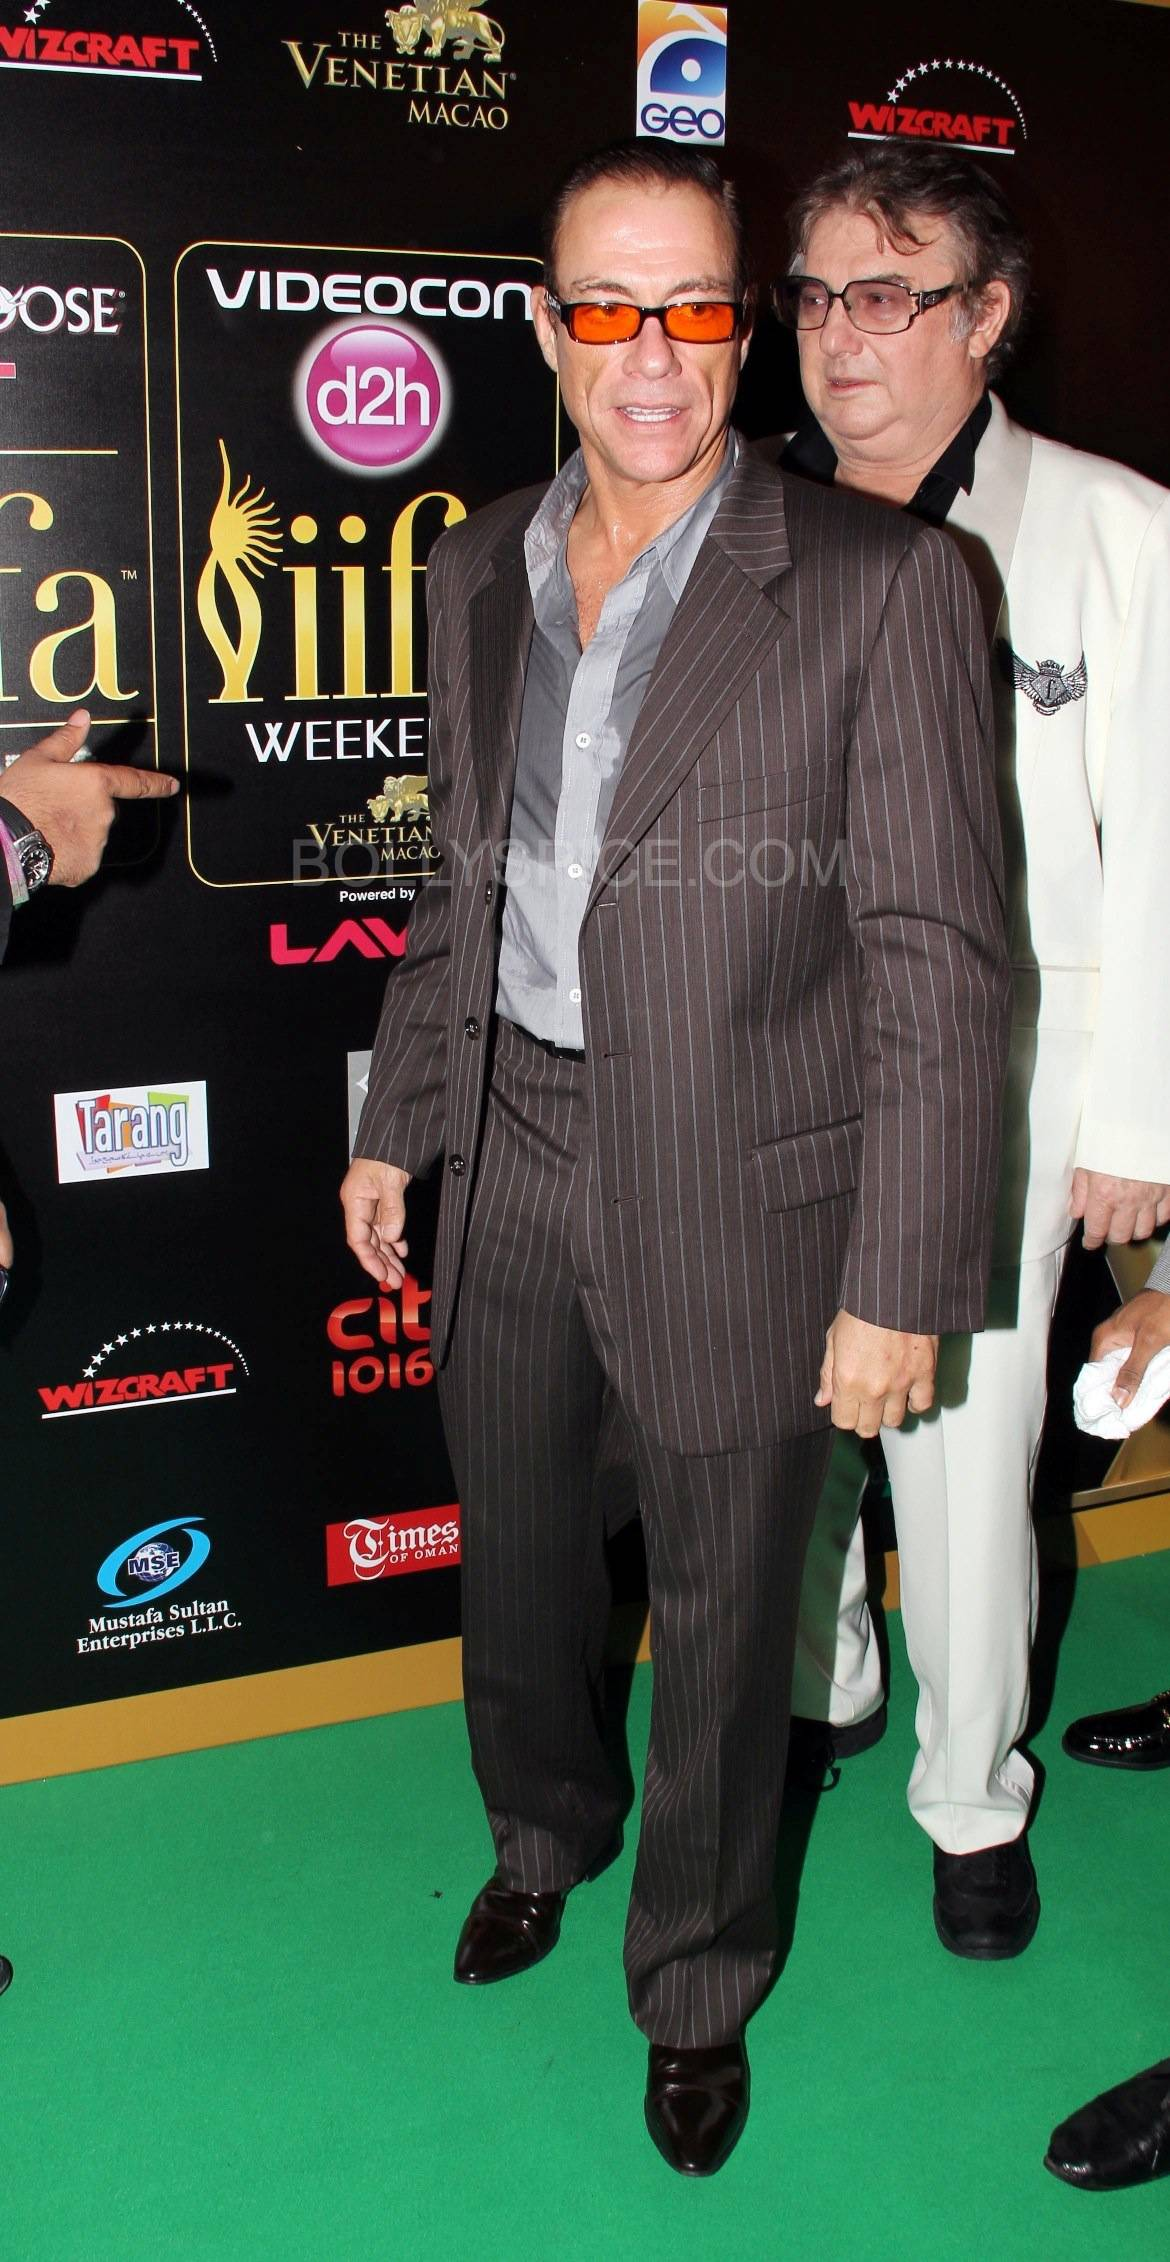 Jean Claude Van Damme More from IIFA Rocks including winners and more Green Carpet pics! Pics added!